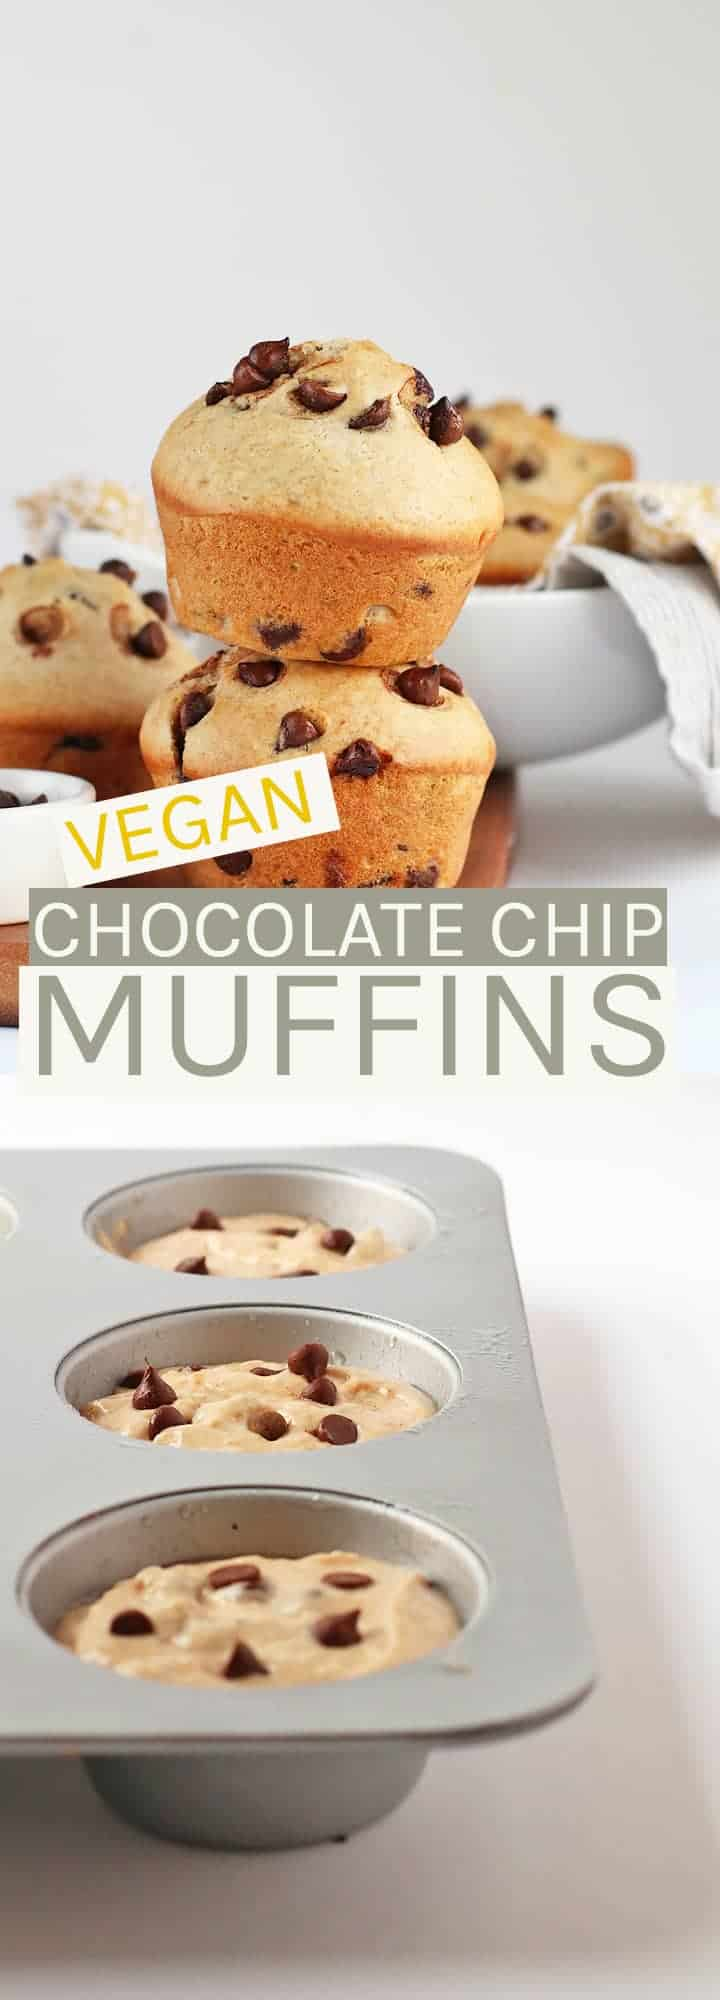 Enjoy these sweet and fluffy vegan Chocolate Chip Muffins filled with chocolate in every bite.